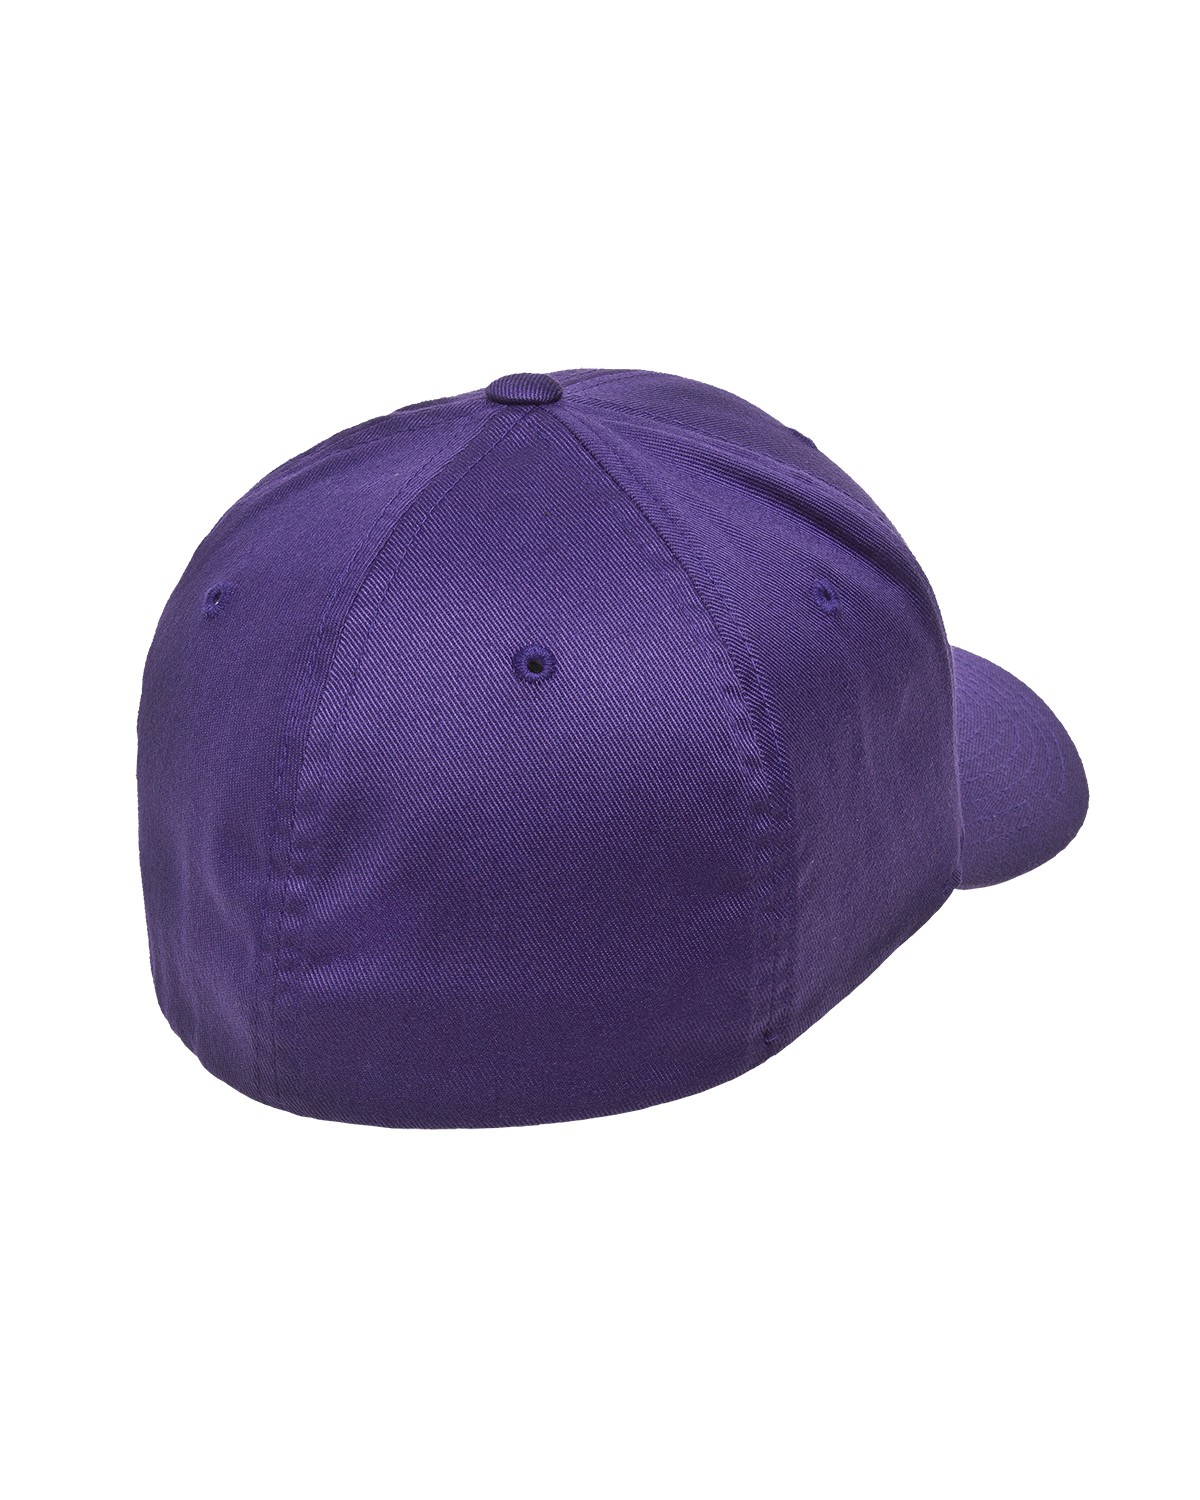 6277 Flexfit PURPLE